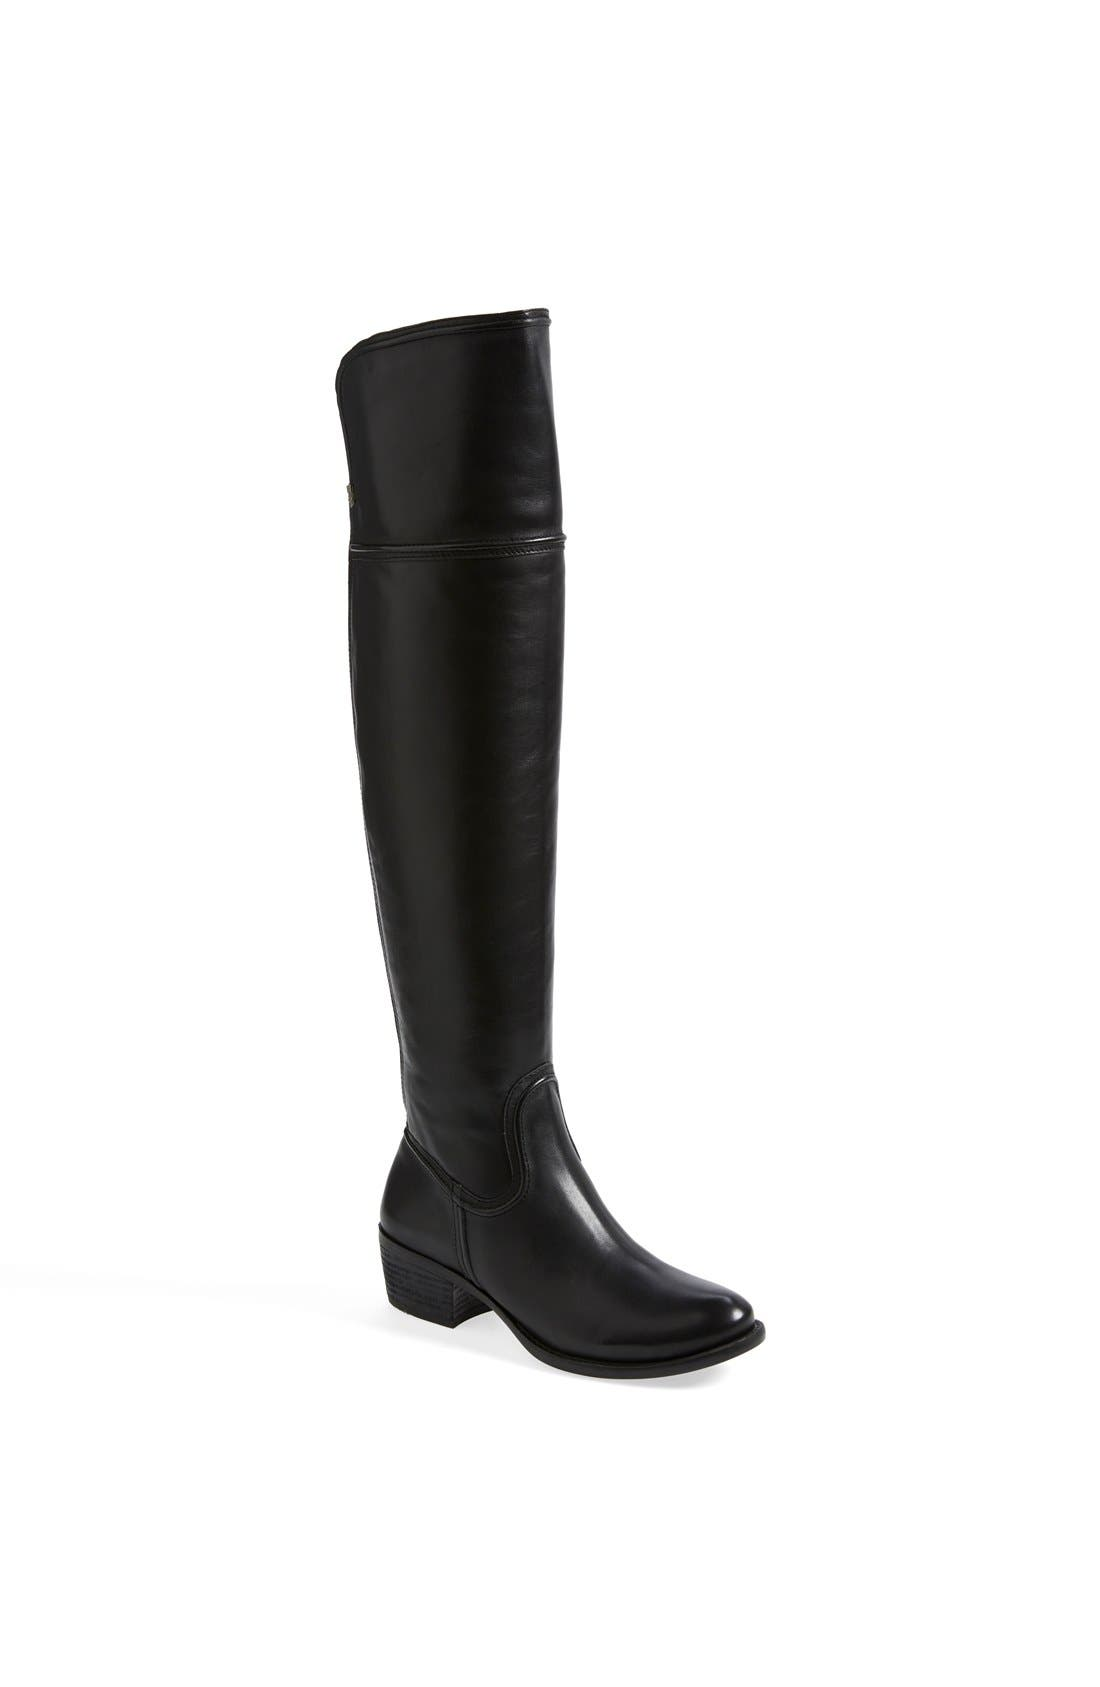 'Baldwin' Over the Knee Boot,                             Main thumbnail 1, color,                             001